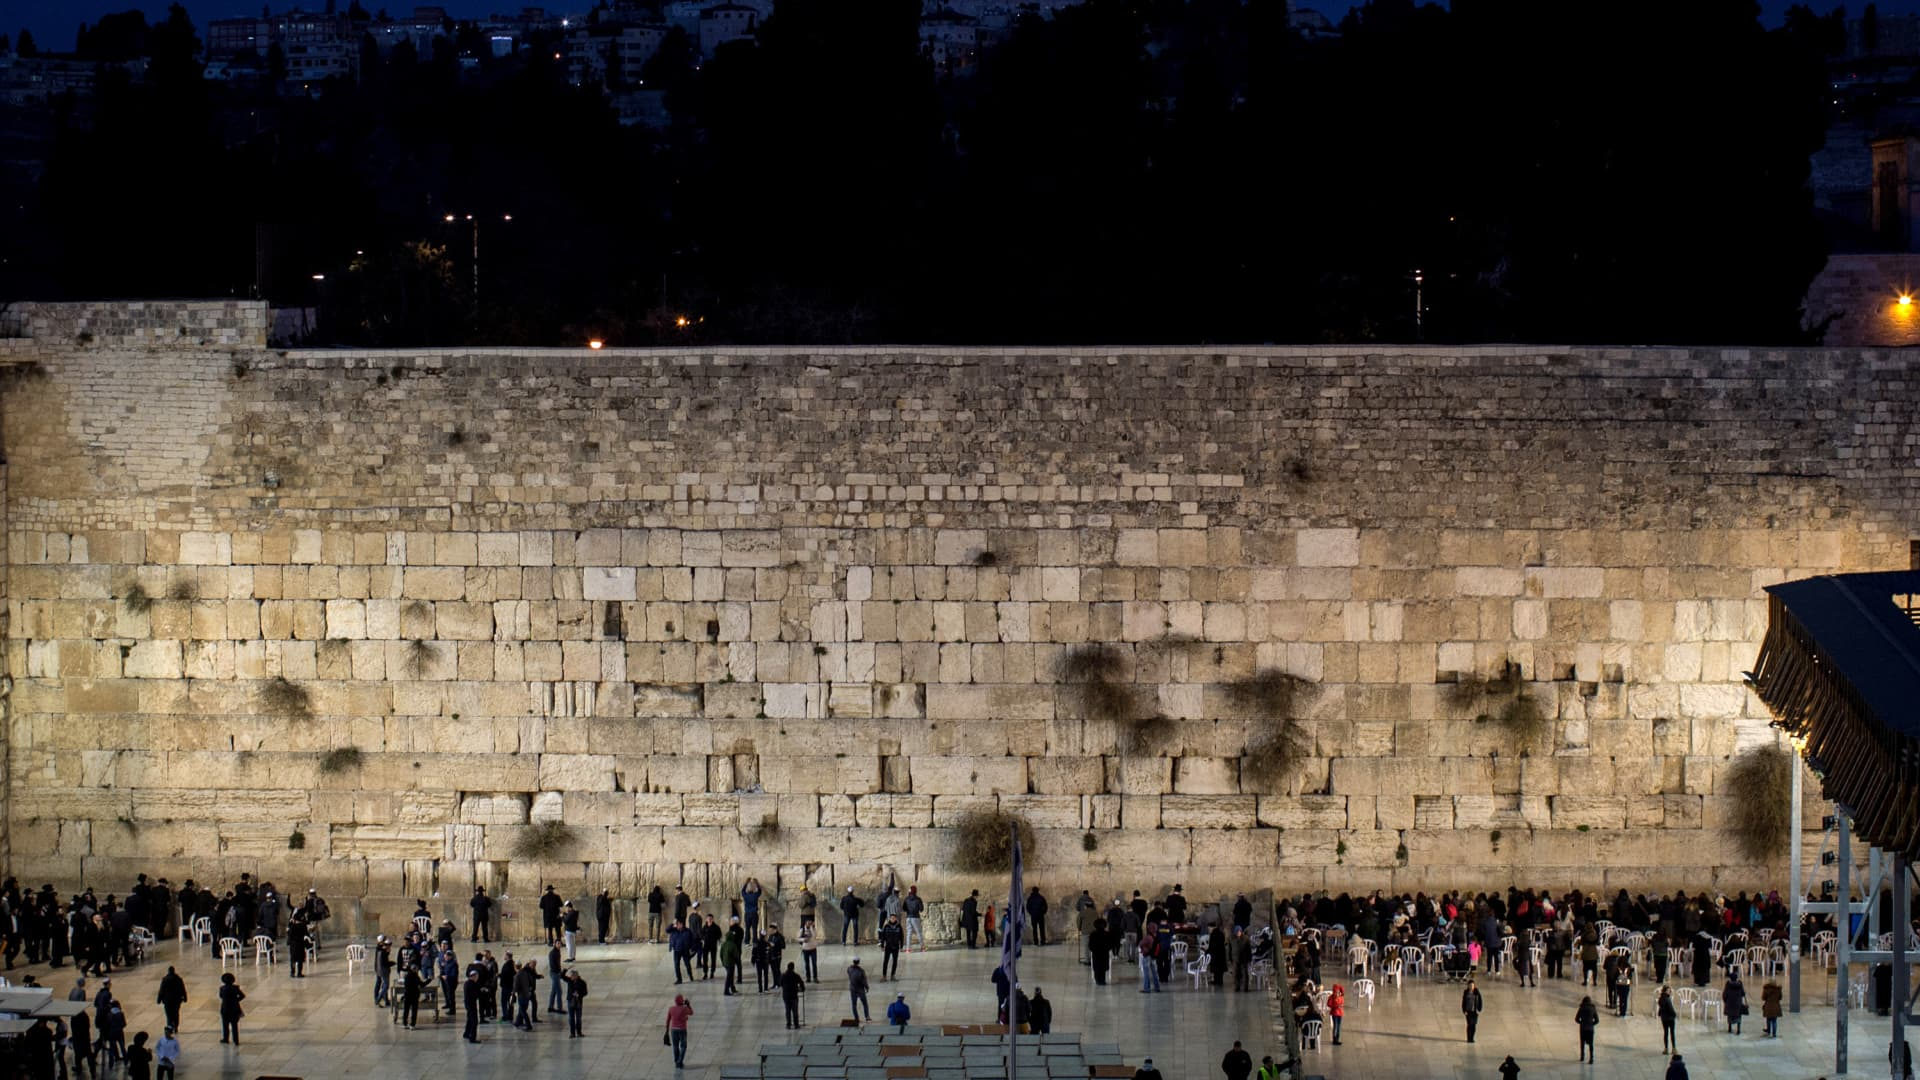 People pray at the Western Wall in the Old City of Jerusalem, Israel on Jan. 12, 2017.